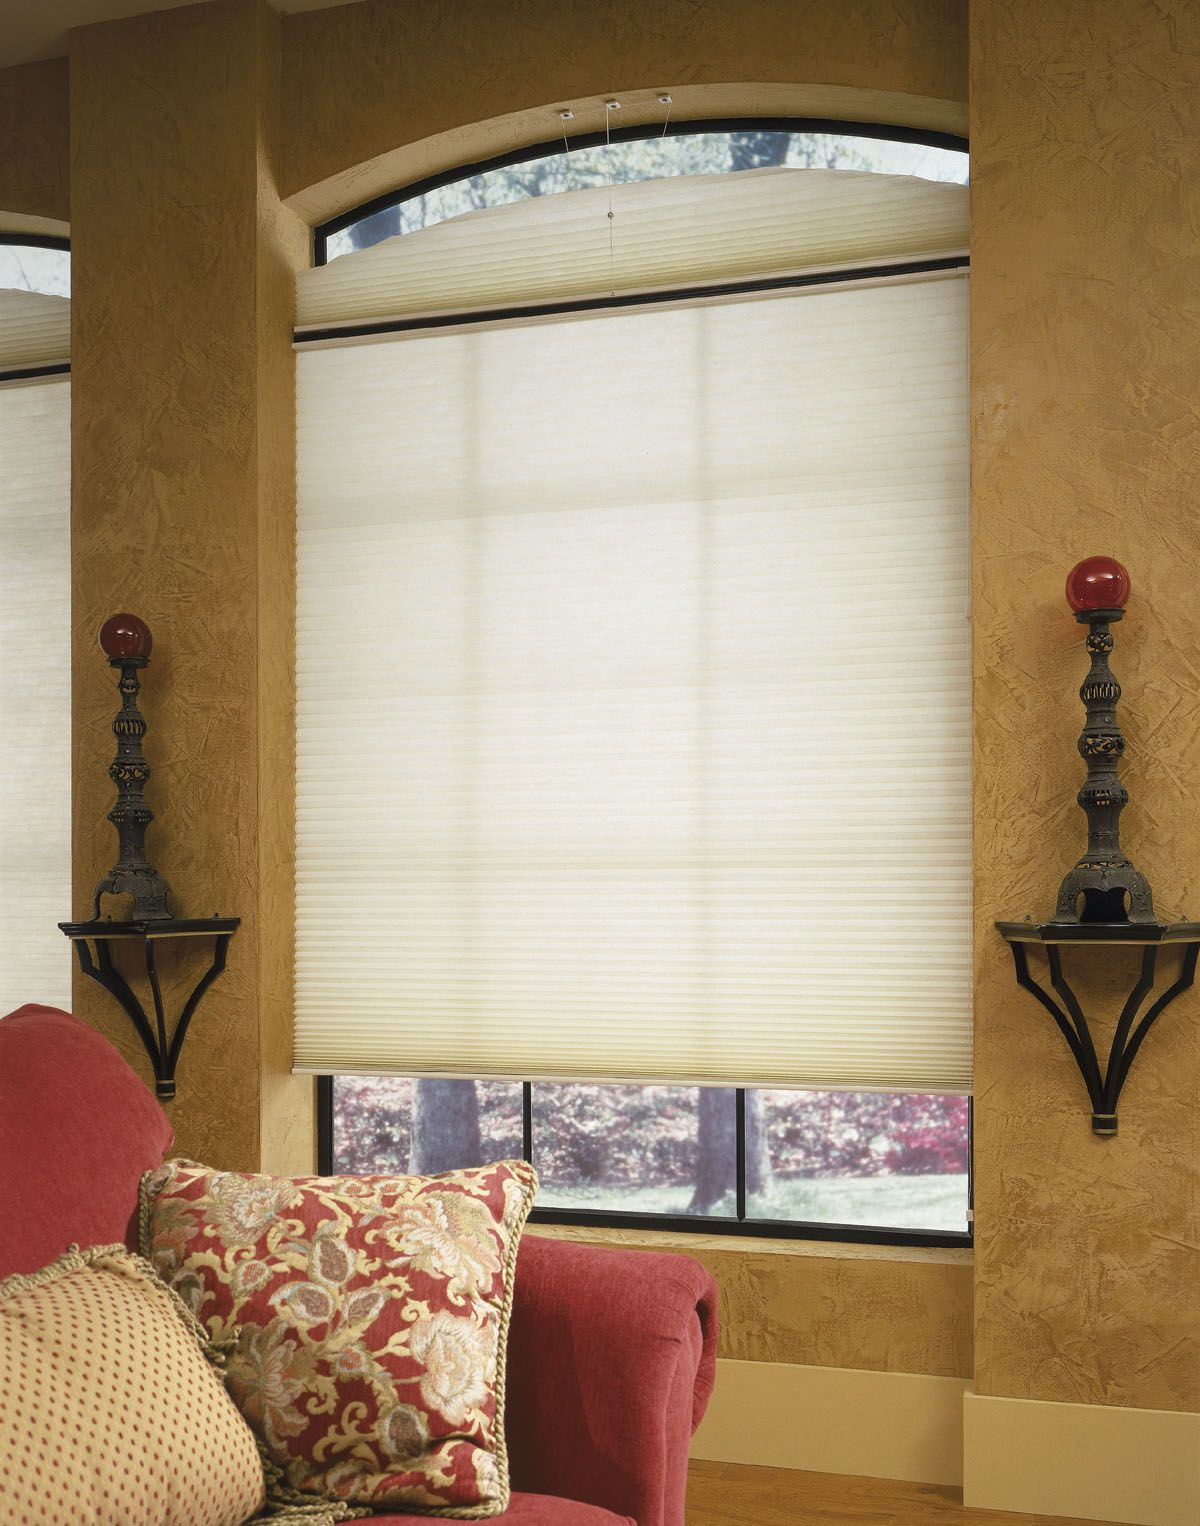 Eyebrow window coverings  these are our most popular movable cellular shade they are very